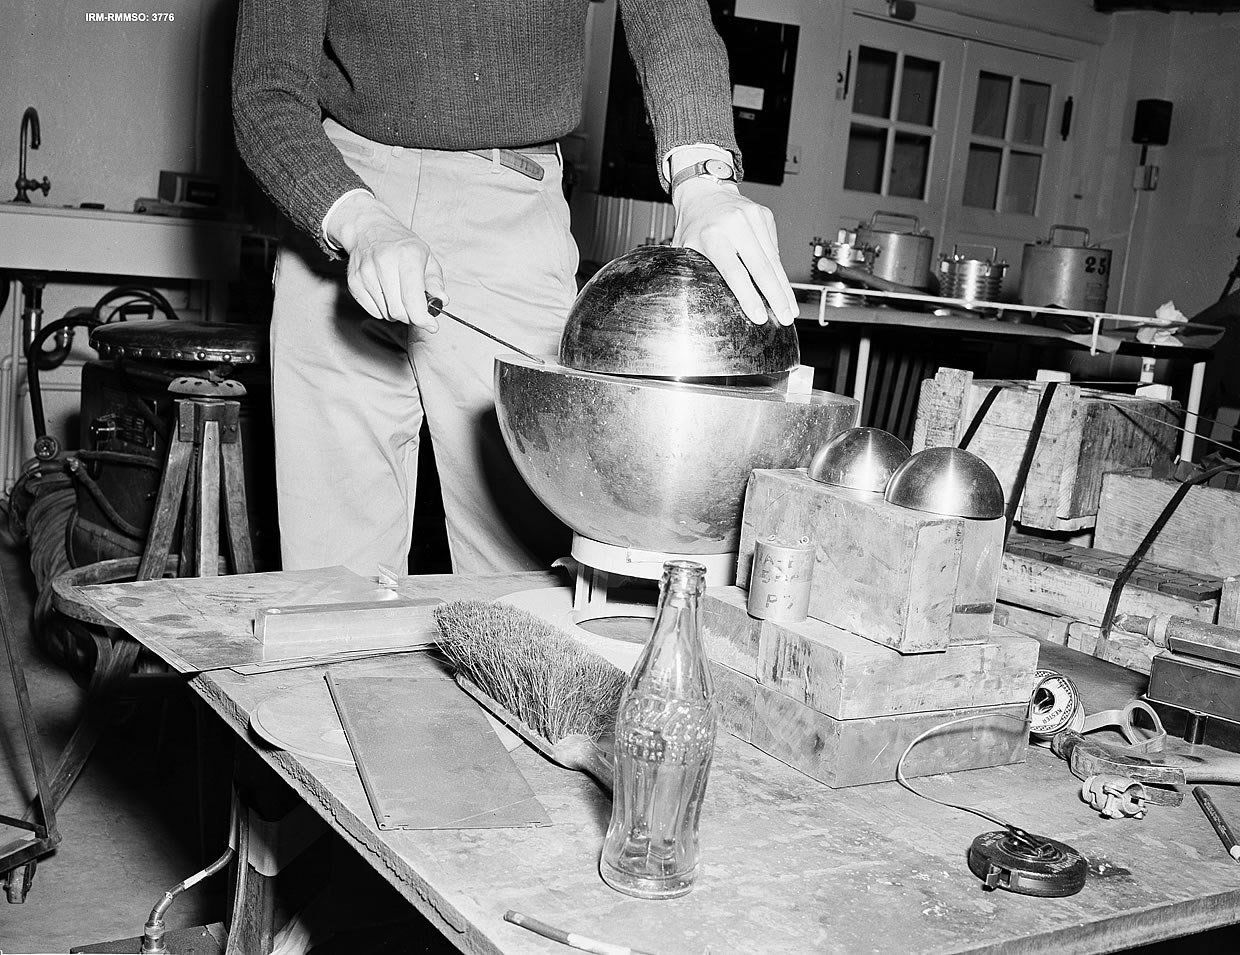 The Demon Core – Both the first and the second person to die from an accidental uncontrolled nuclear reaction were working with the same plutonium core